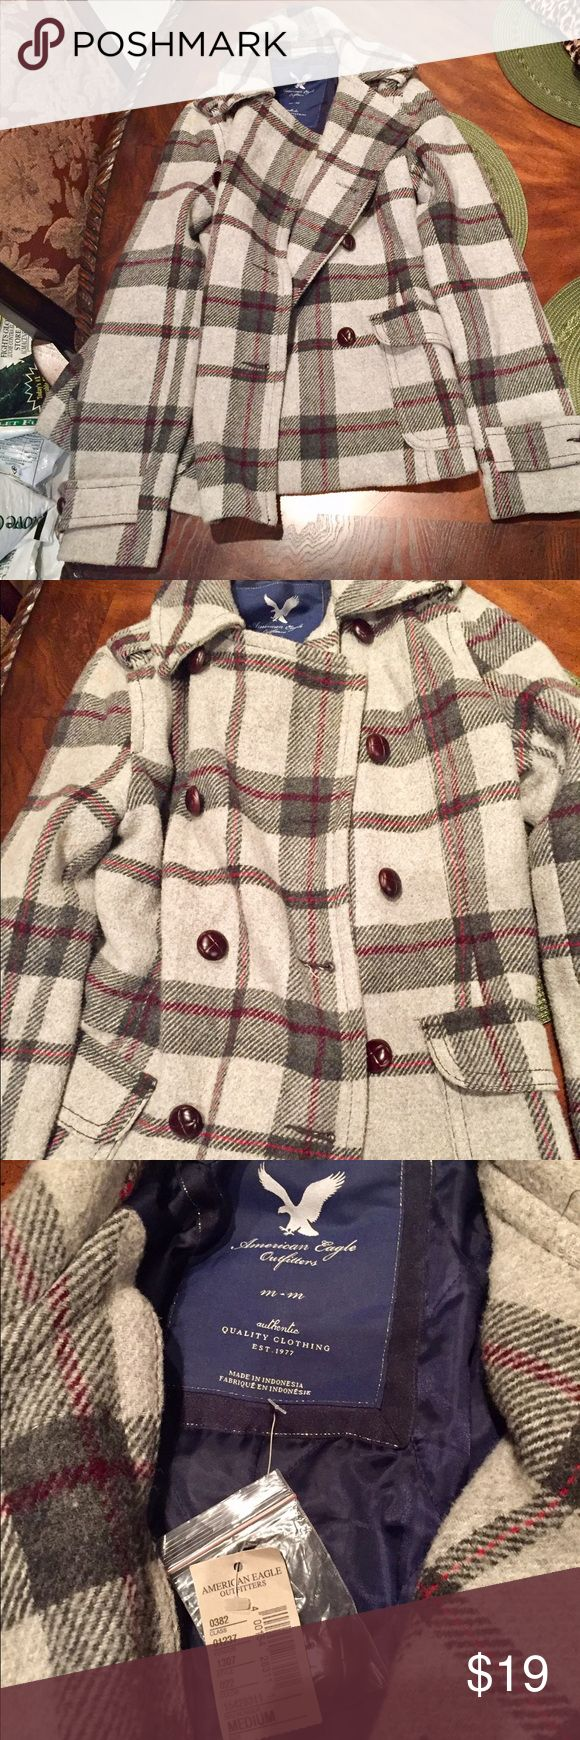 GRAY PLAID AMERICAN EAGLE PEACOAT‼️W/TAG‼️SIZE M🎁 Gray plaid American Eagle Outfitters PeaCoat‼️Never Worn With Tags‼️Does Not Come with Belt ‼️BUY NOW🎉🎉🎁🎁 American Eagle Outfitters Jackets & Coats Pea Coats